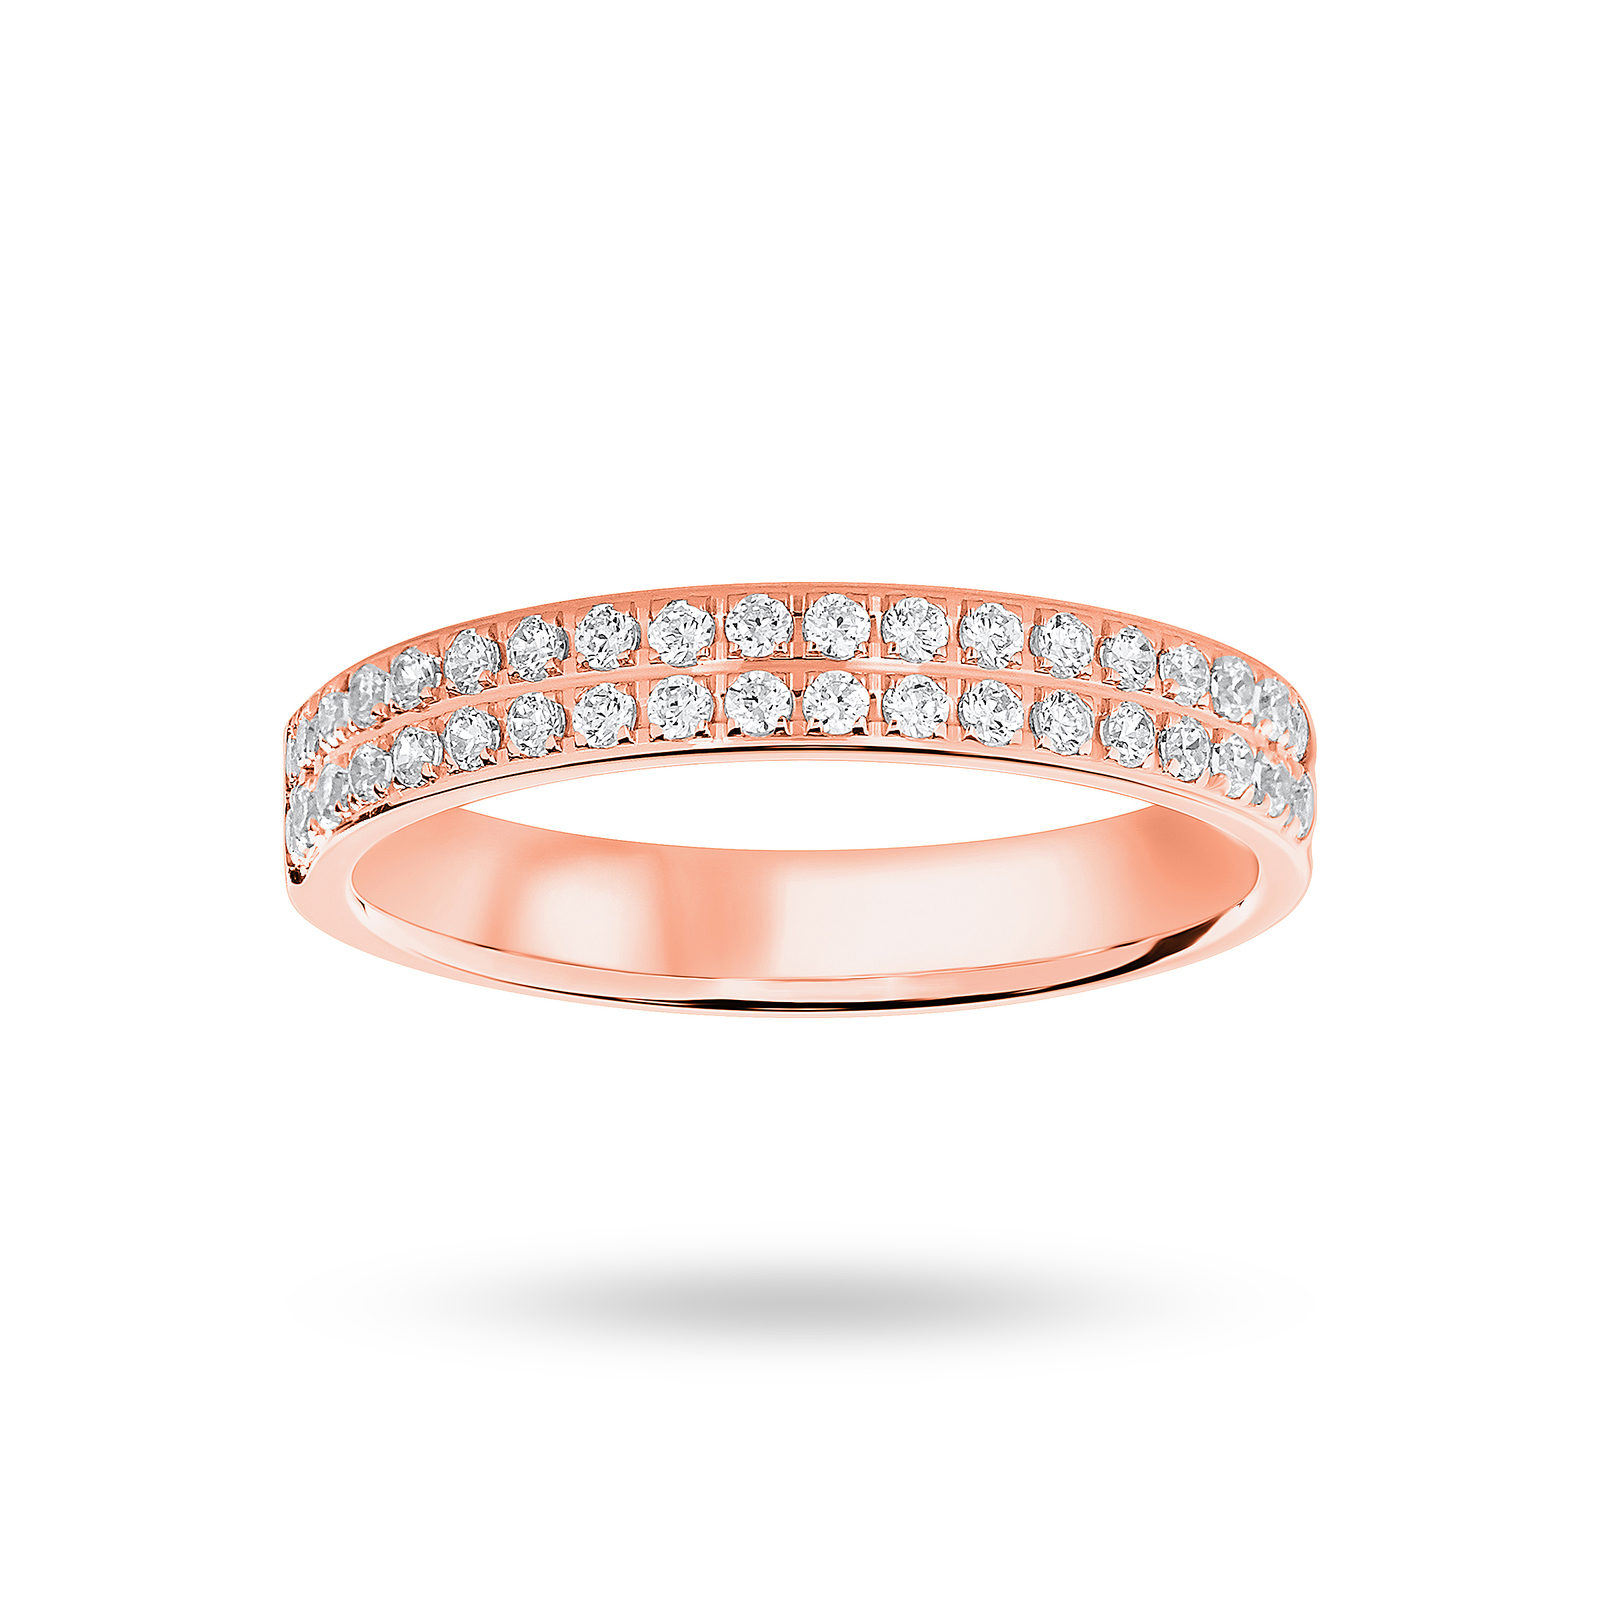 9ct Rose Gold 0.25ct 2 Row Half Eternity Ring - Ring Size K